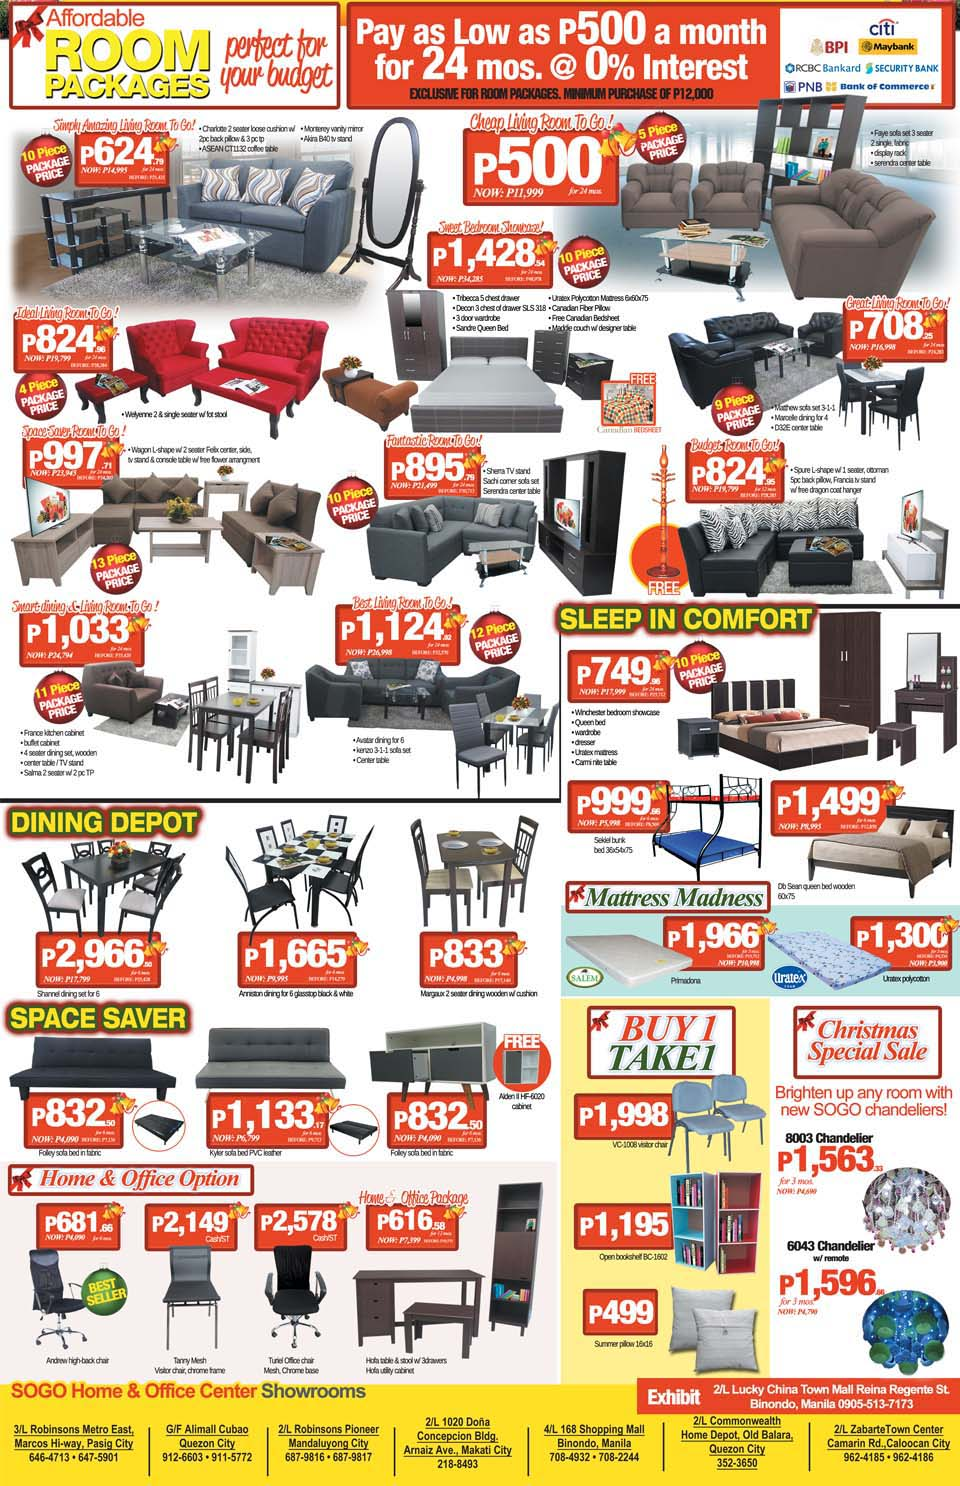 November 2015 ednything Home furnishings factory outlet